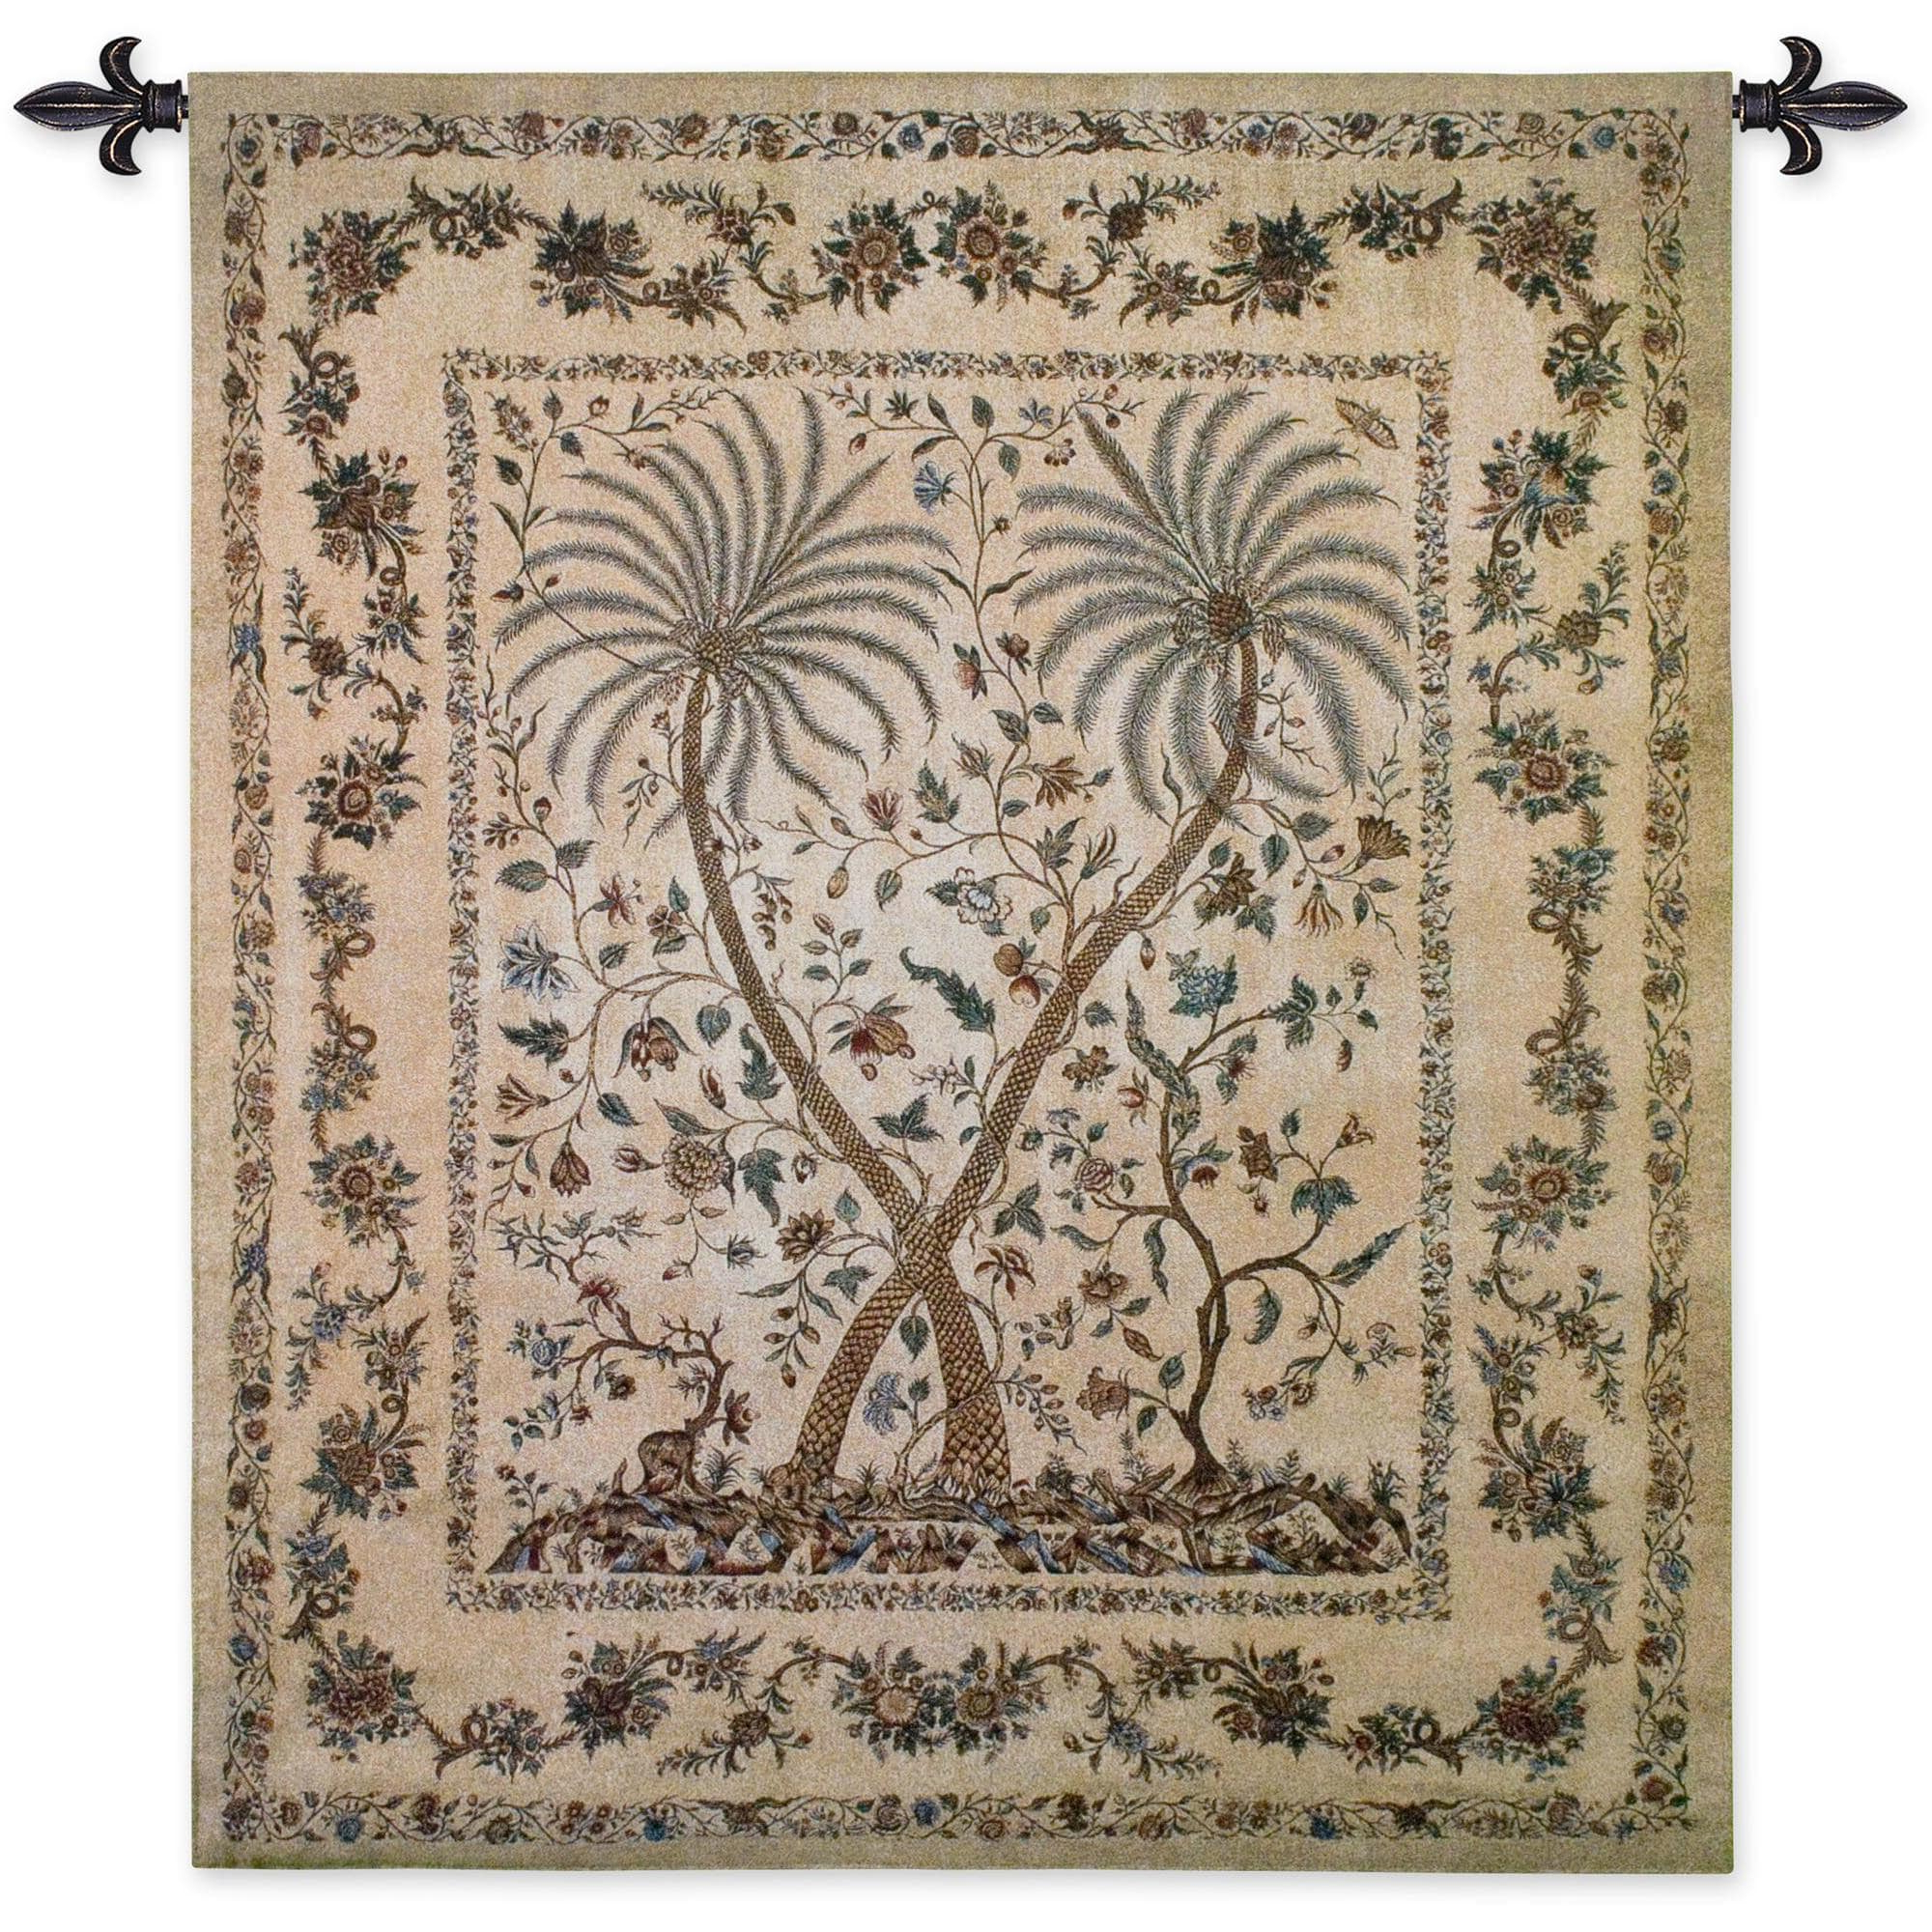 Blended Fabric The Broken Chain Tapestries And Wall Hangings With Preferred Finearttapestries 3145 Wh Palampore Wall Tapestry (View 4 of 20)